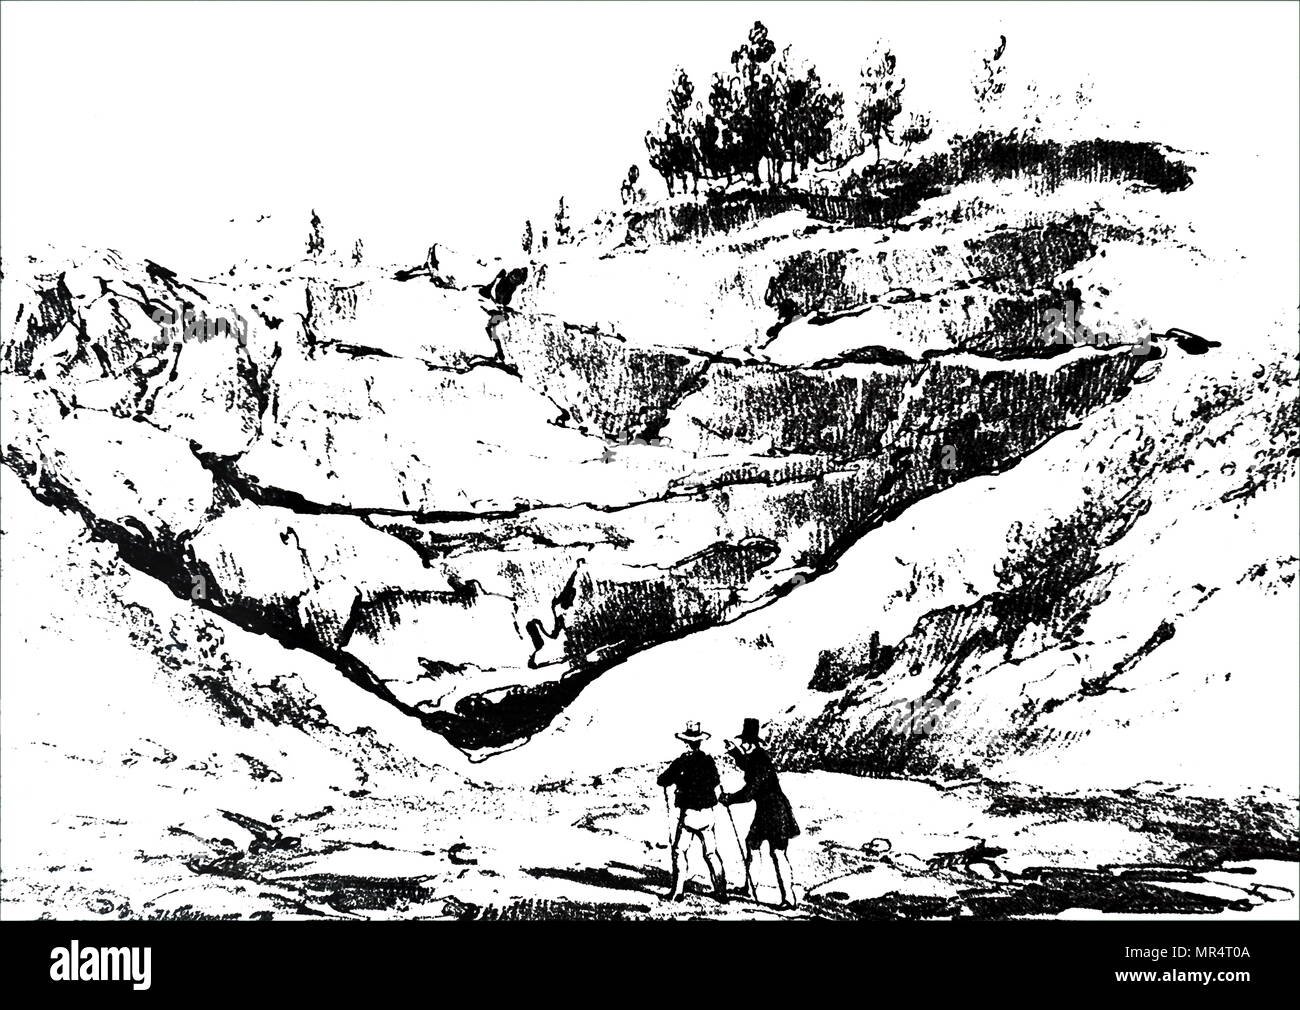 Engraving depicting beds of solid lava from Mount Vesuvius in Fosso Grande. Dated 19th century - Stock Image